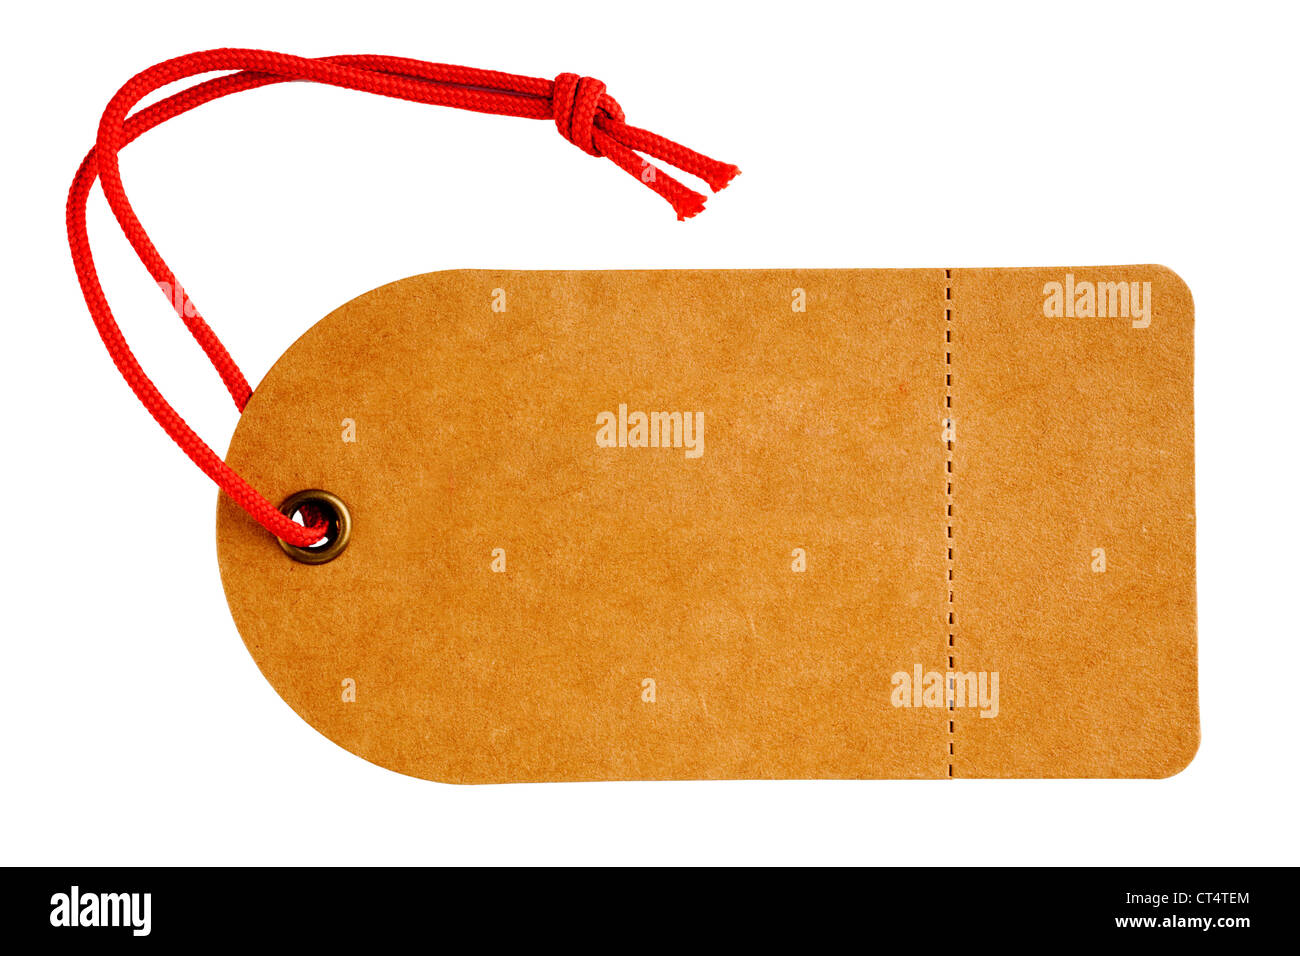 Sales tag or swing ticket, made from a rough textured brown card, with red string, - Stock Image